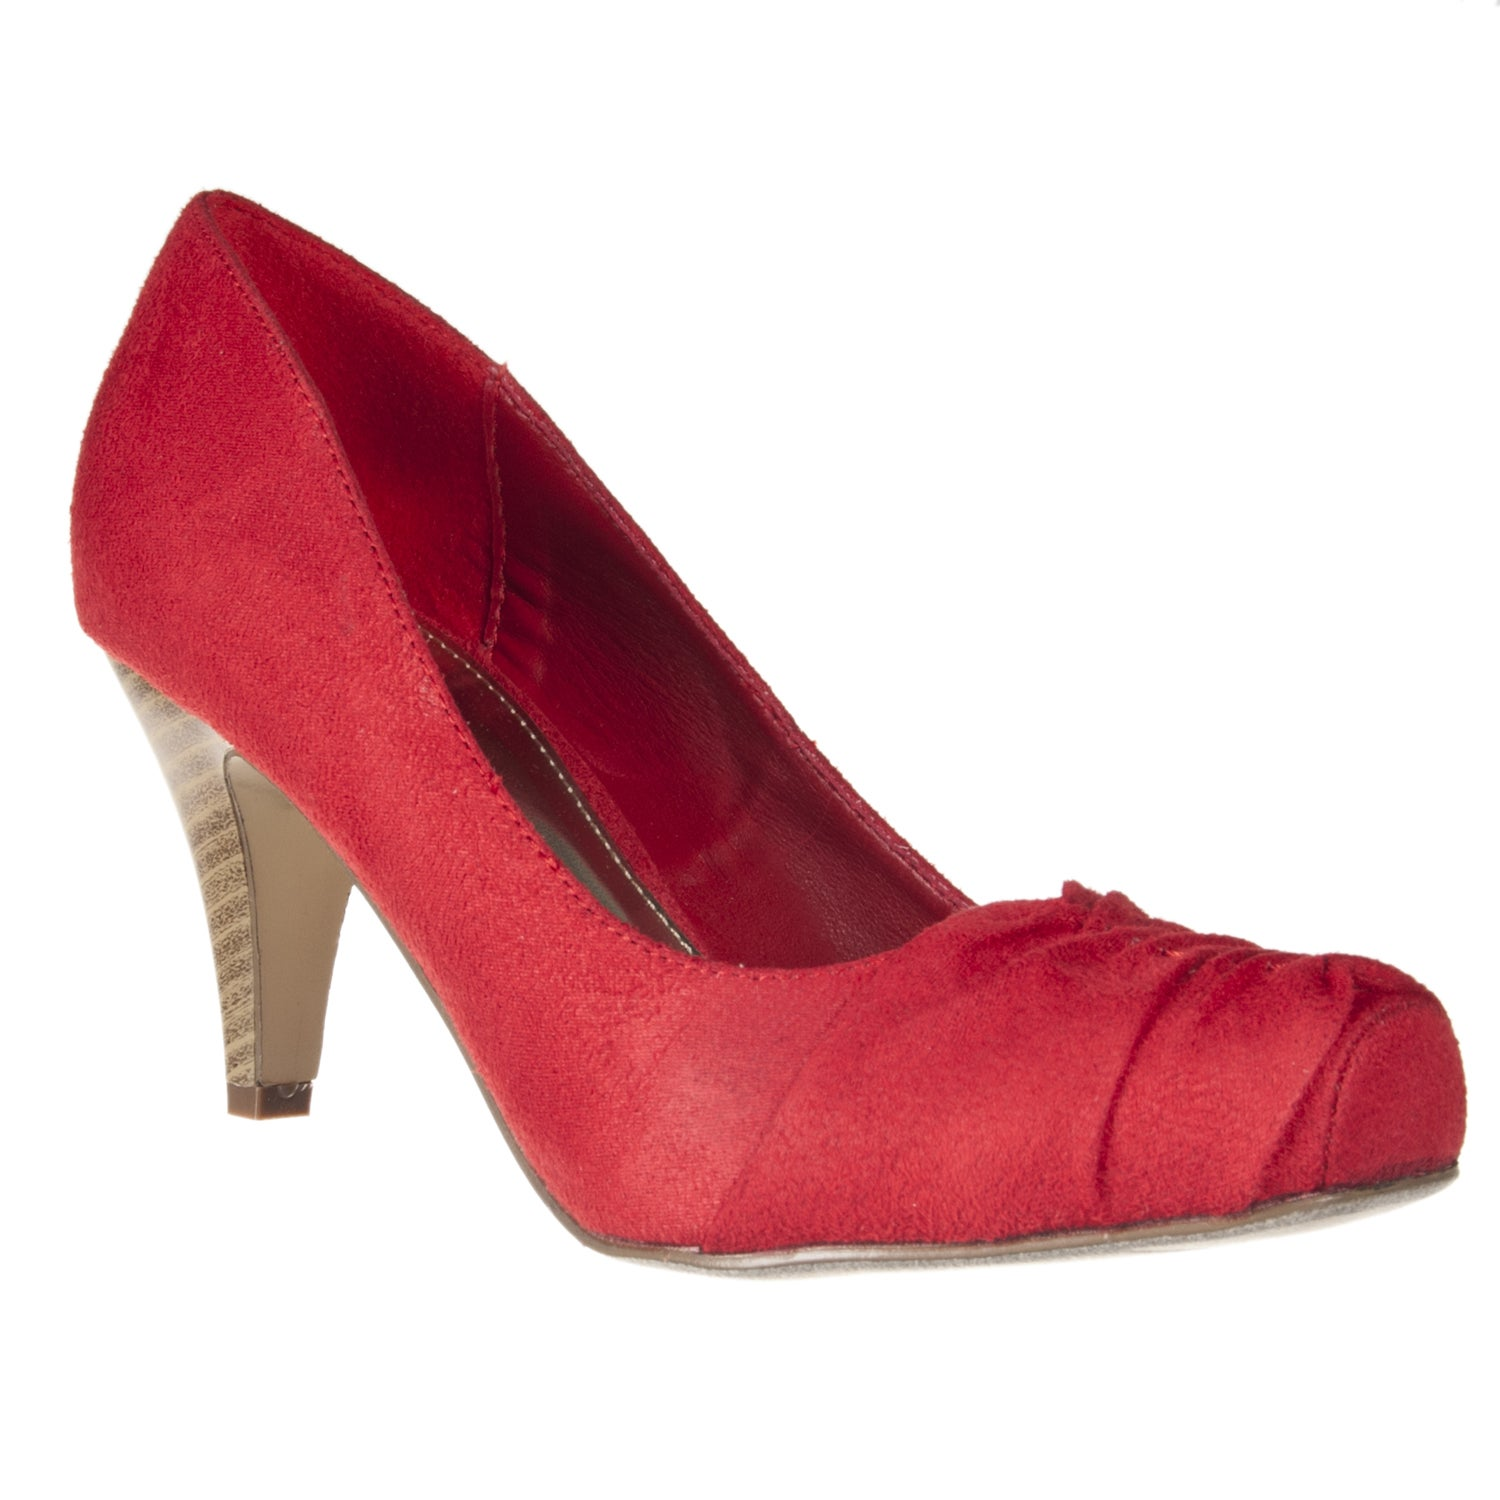 Riverberry Women's 'Array' Red Ruched Toe Pumps